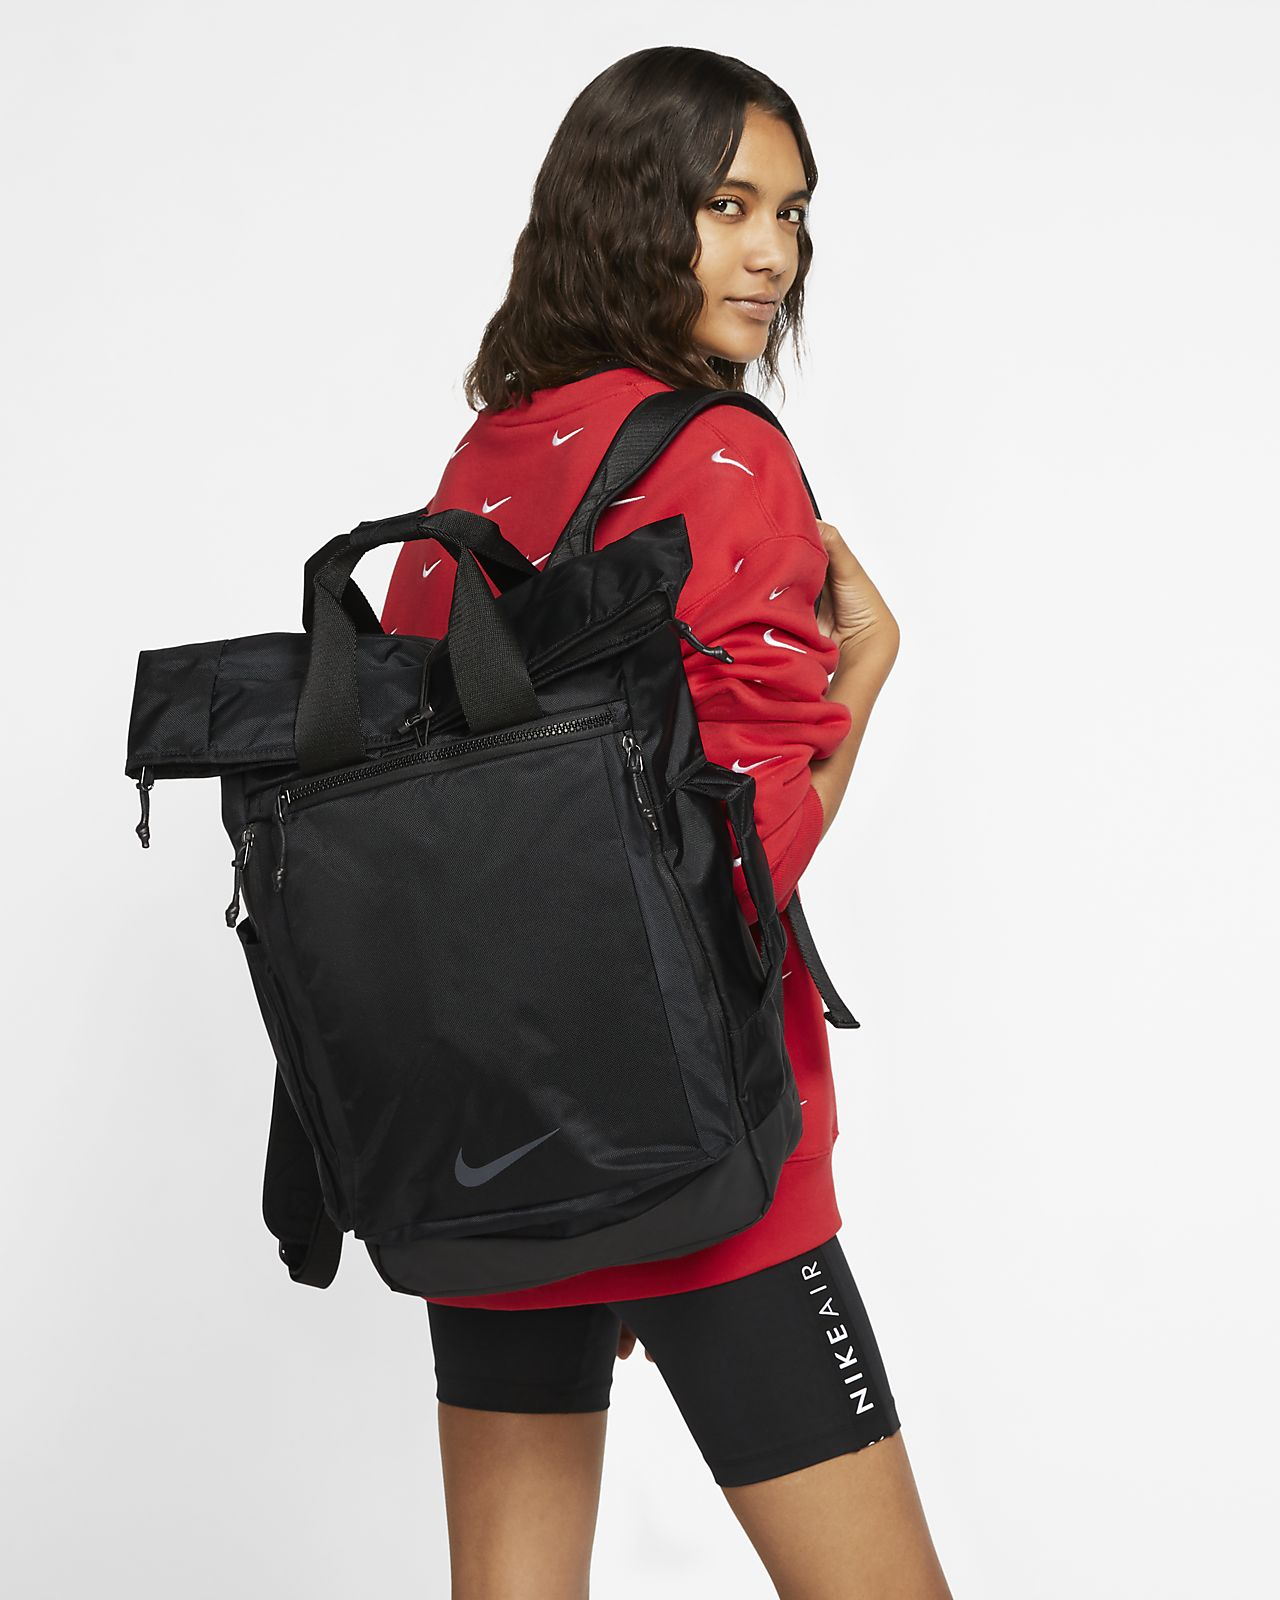 Nike Most Wanted: Join the Nike Academy